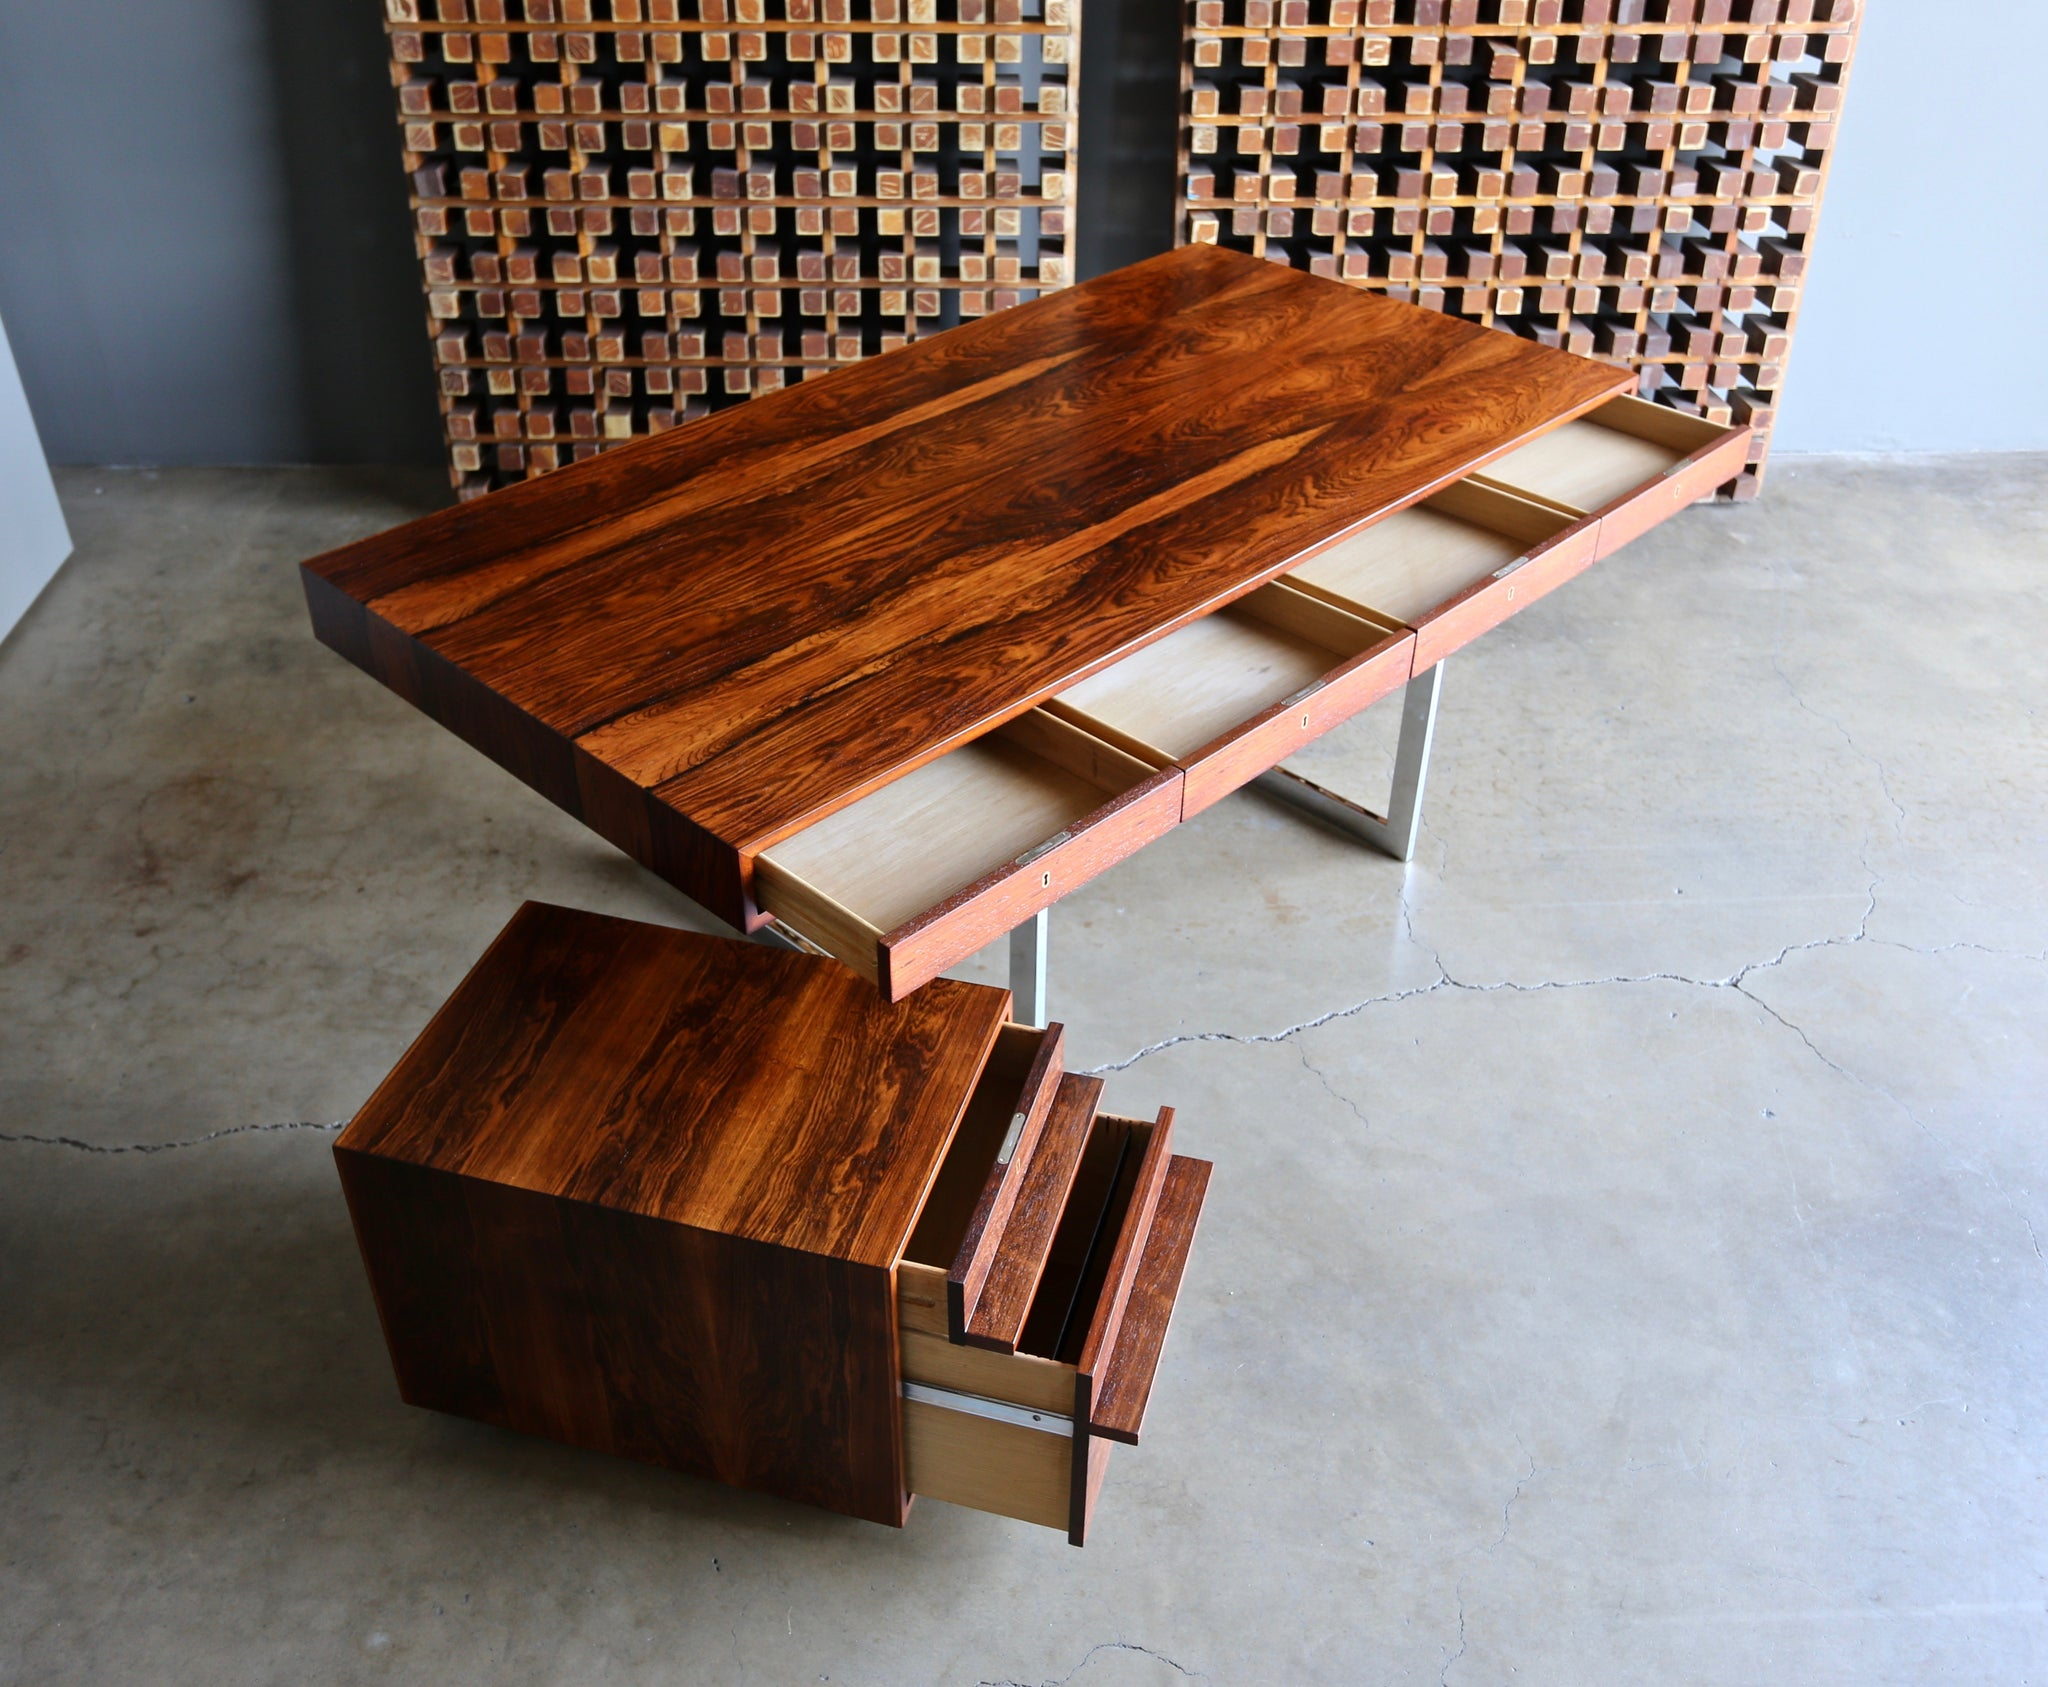 Bodil Kjaer Rosewood Desk for E. Pederson and Sons A/S circa 1959